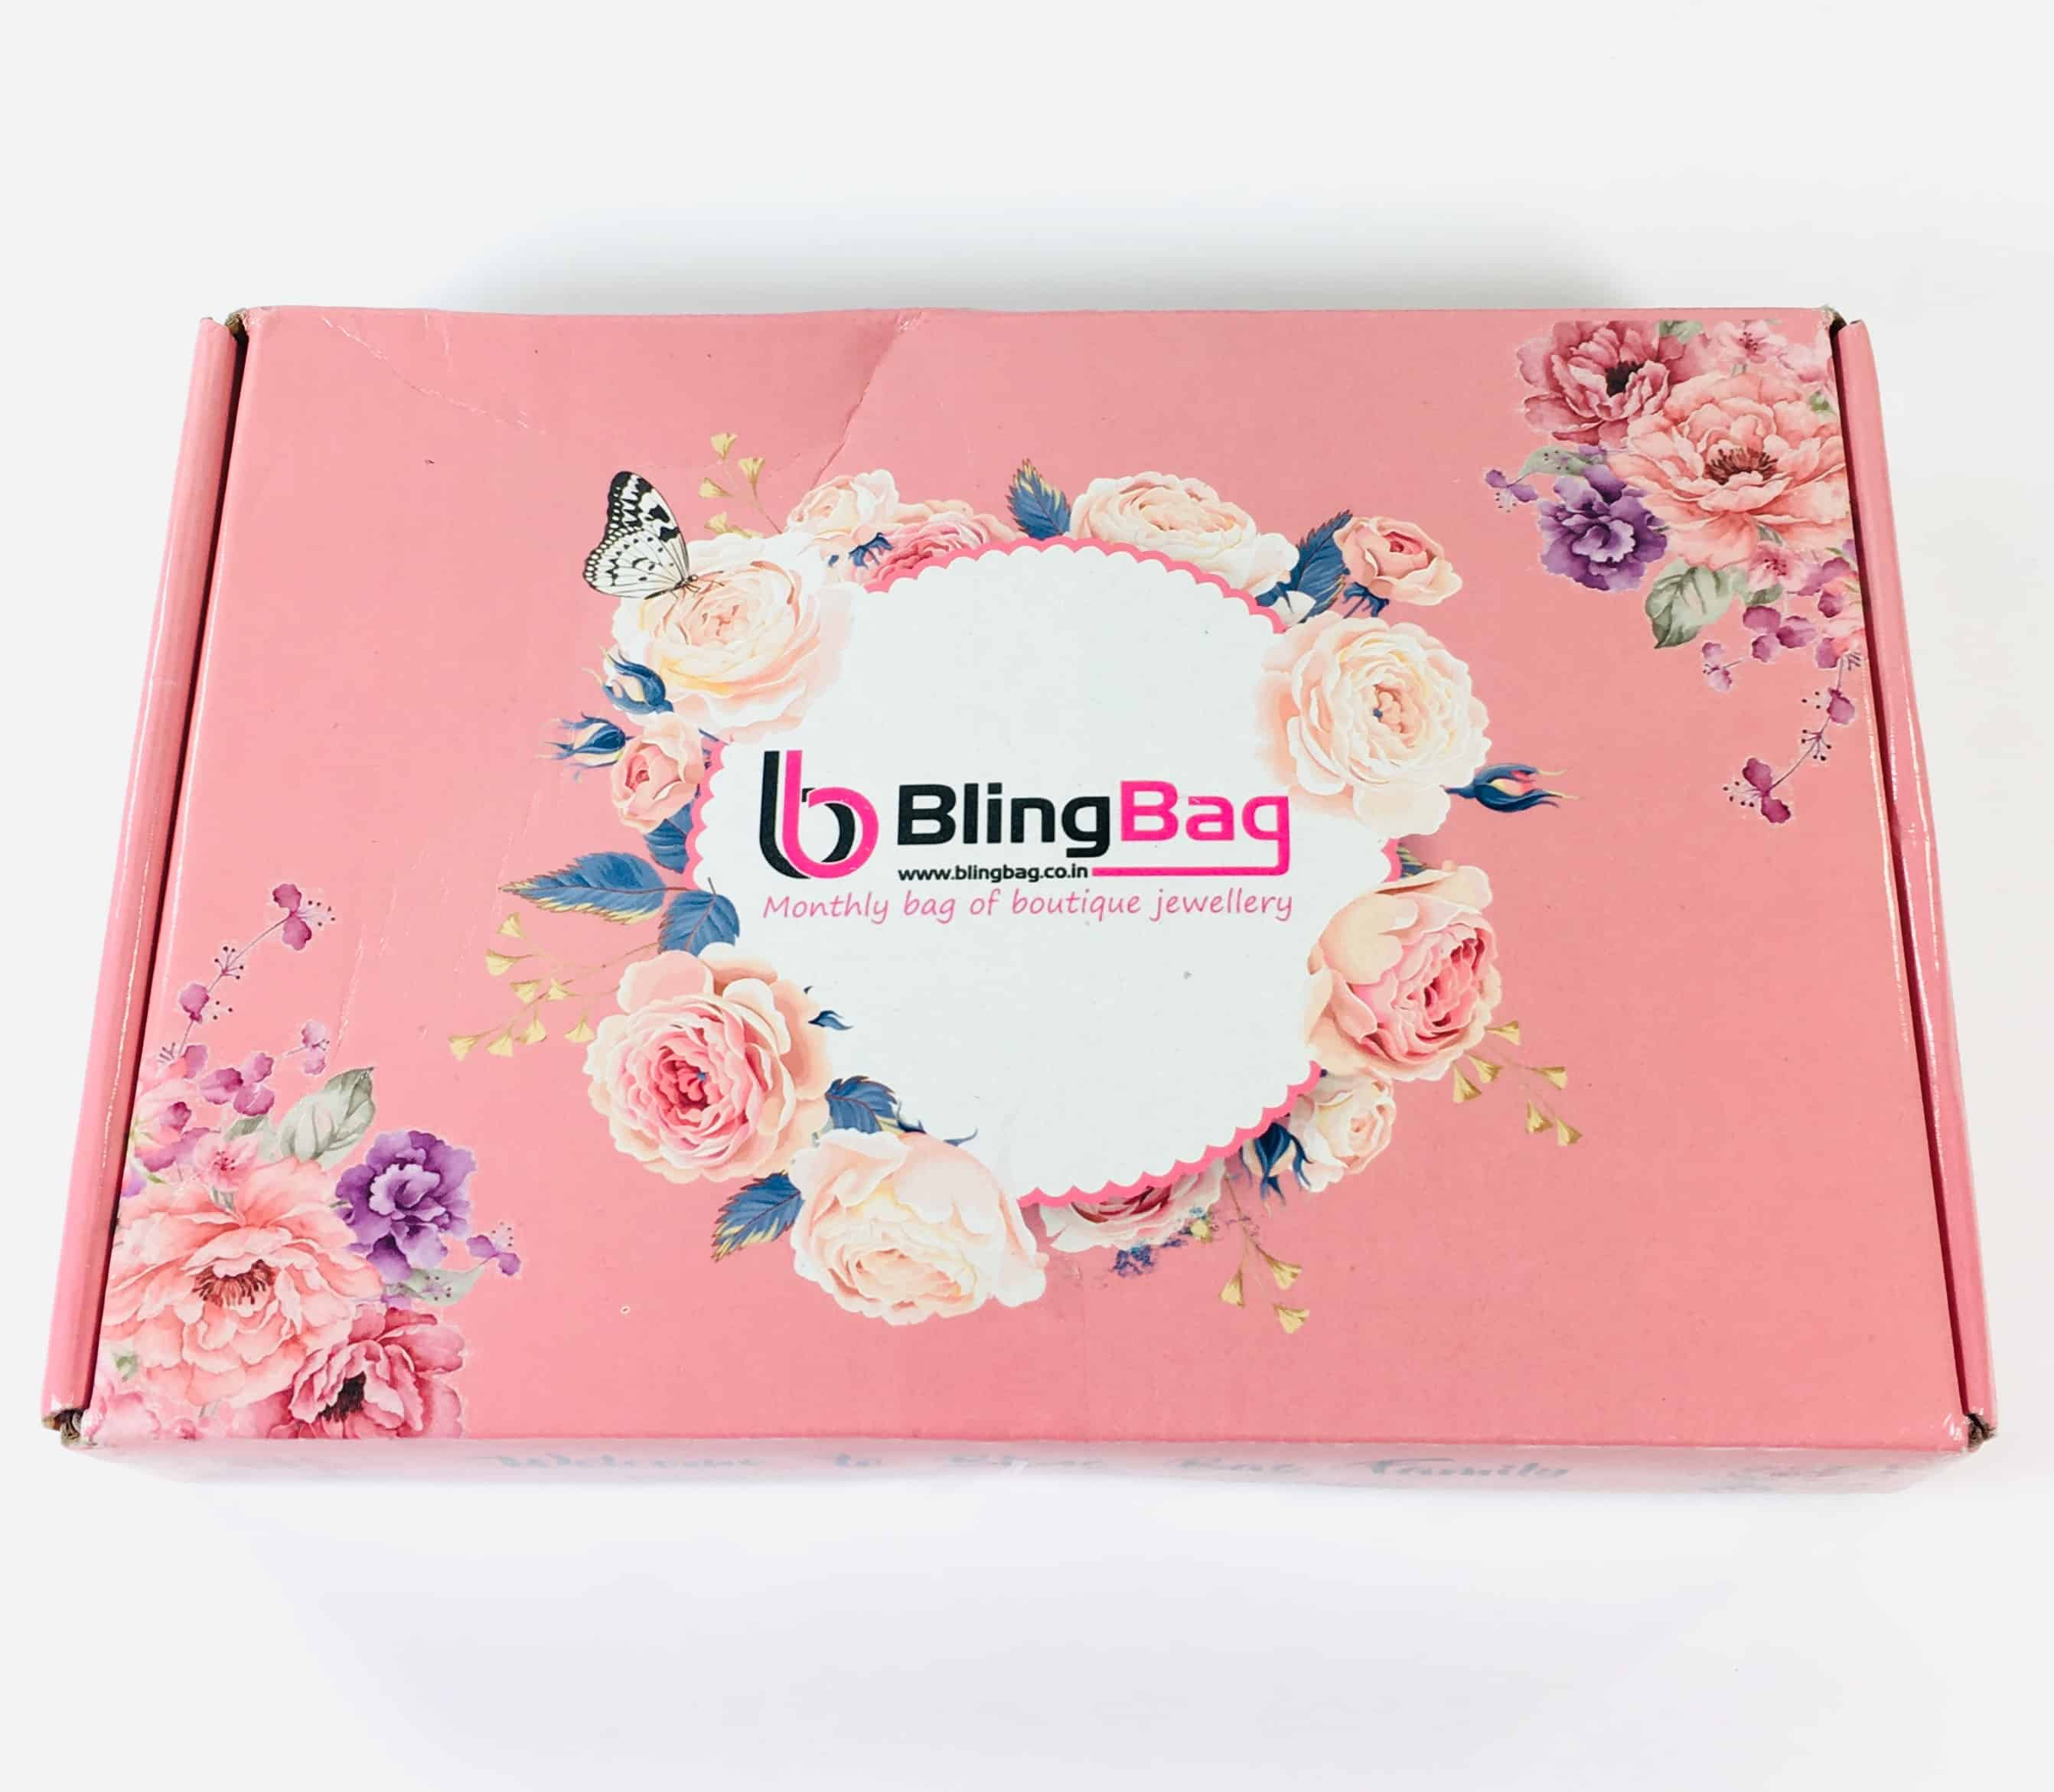 Bling Bag October 2018 Subscription Box Review